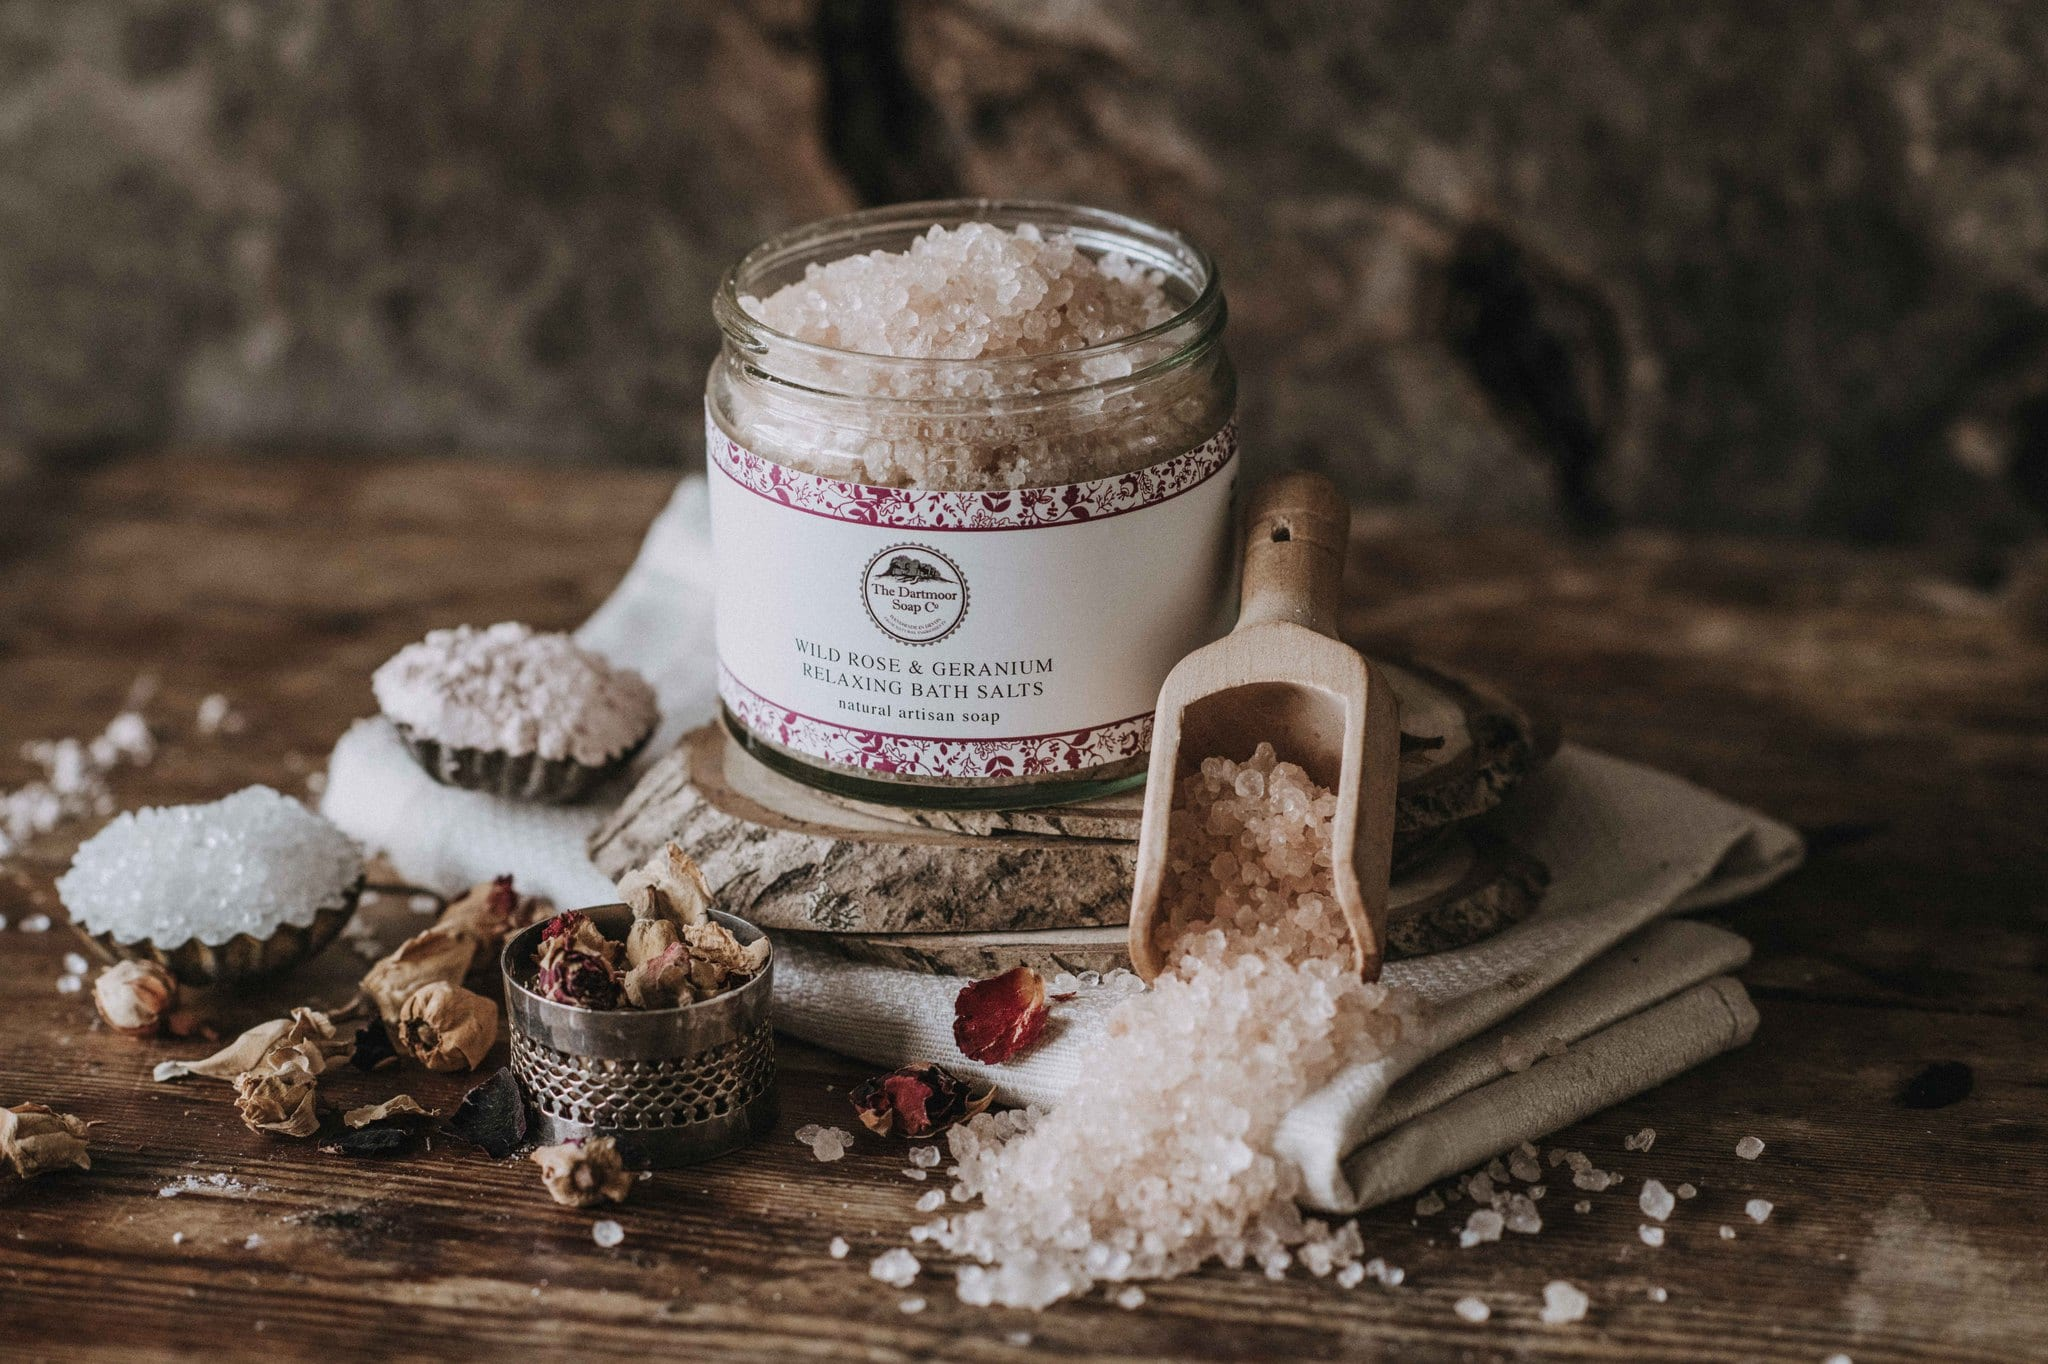 Wild Rose Geranium Relaxing Bath Salts The Dartmoor Soap Company Ltd